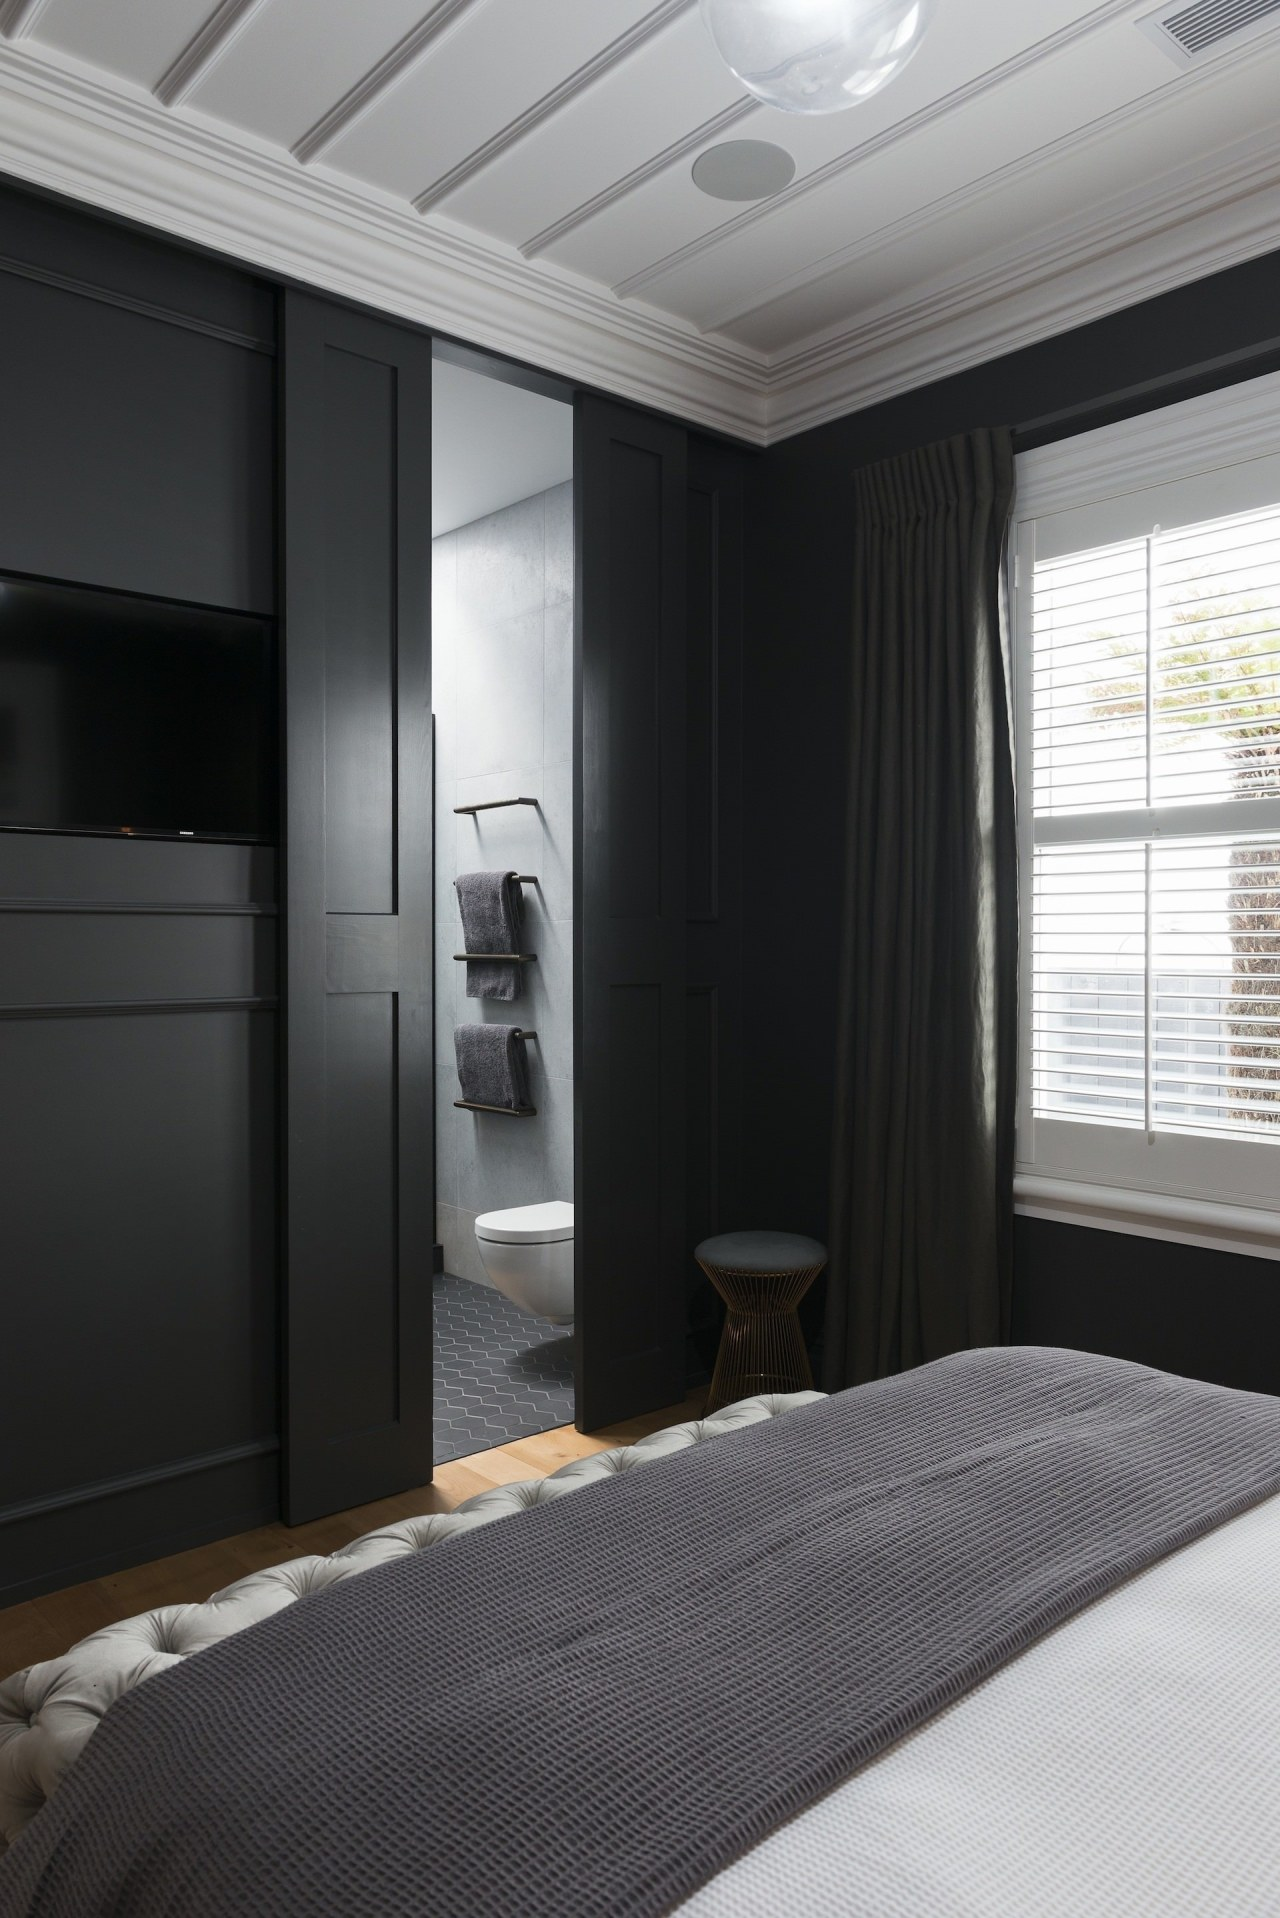 Caro Design architecture, ceiling, interior design, room, window, black, gray